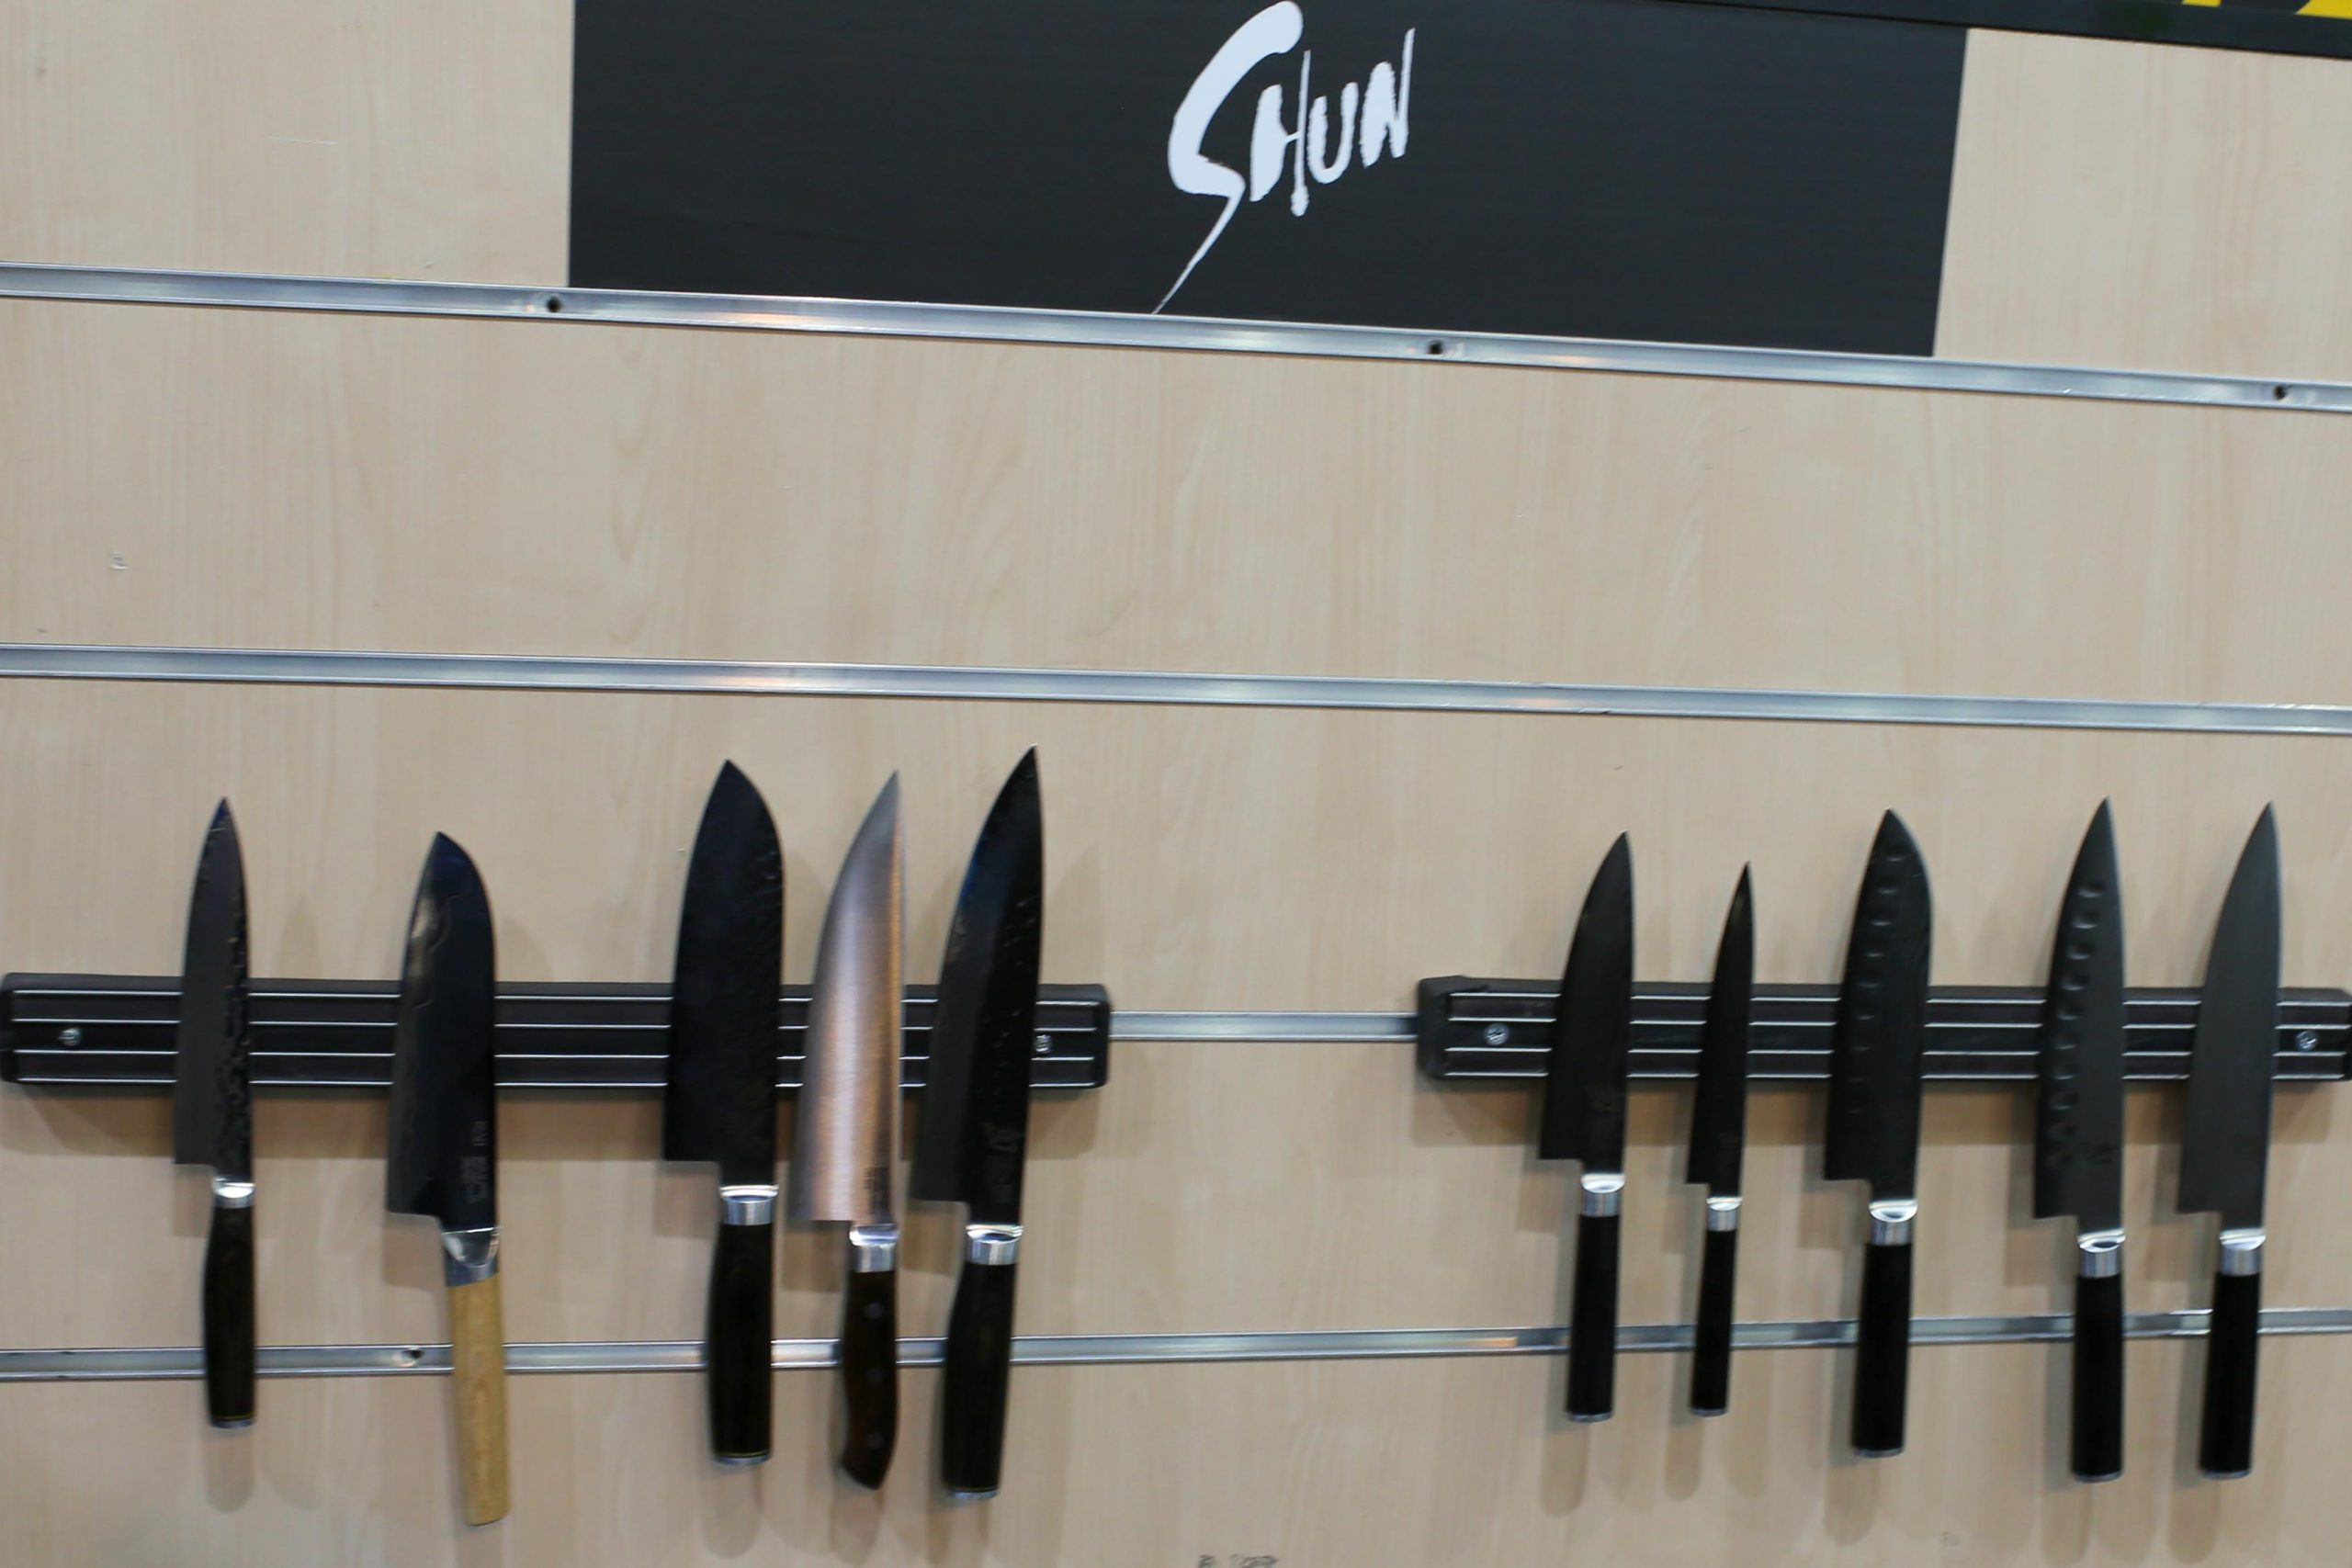 Dick, Shun, Global and Berox Kitchen Knives Presented at the Hotex-Kitex Expo